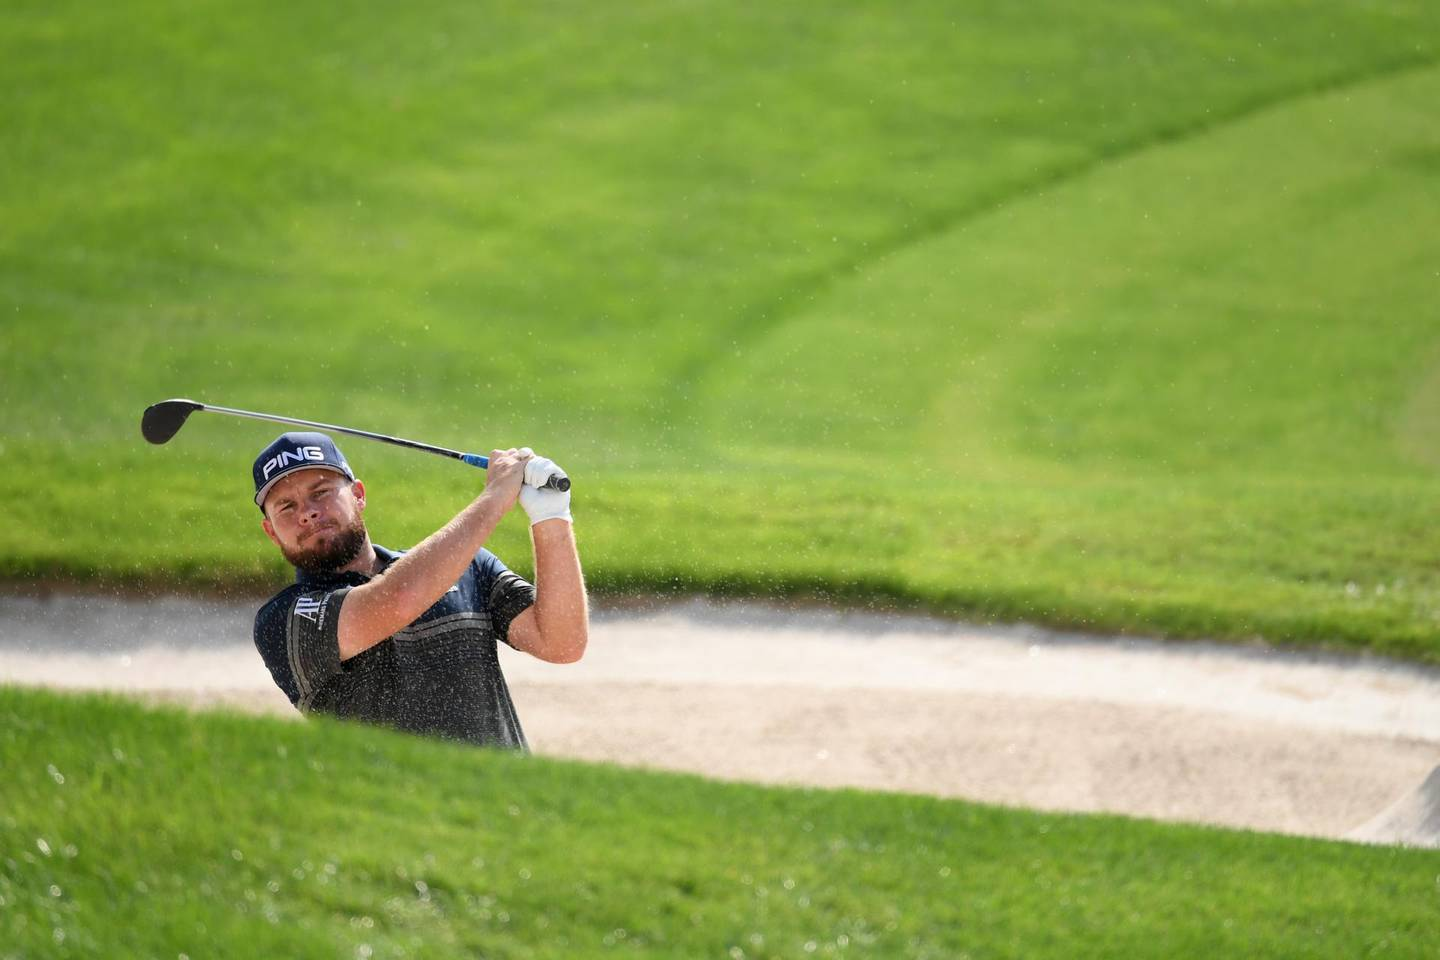 DUBAI, UNITED ARAB EMIRATES - NOVEMBER 19:  Tyrrell Hatton of England hits a bunker shot  during practice prior to the DP World Tour Championship Dubai at Jumeirah Golf Estates on November 19, 2019 in Dubai, United Arab Emirates. (Photo by Ross Kinnaird/Getty Images)